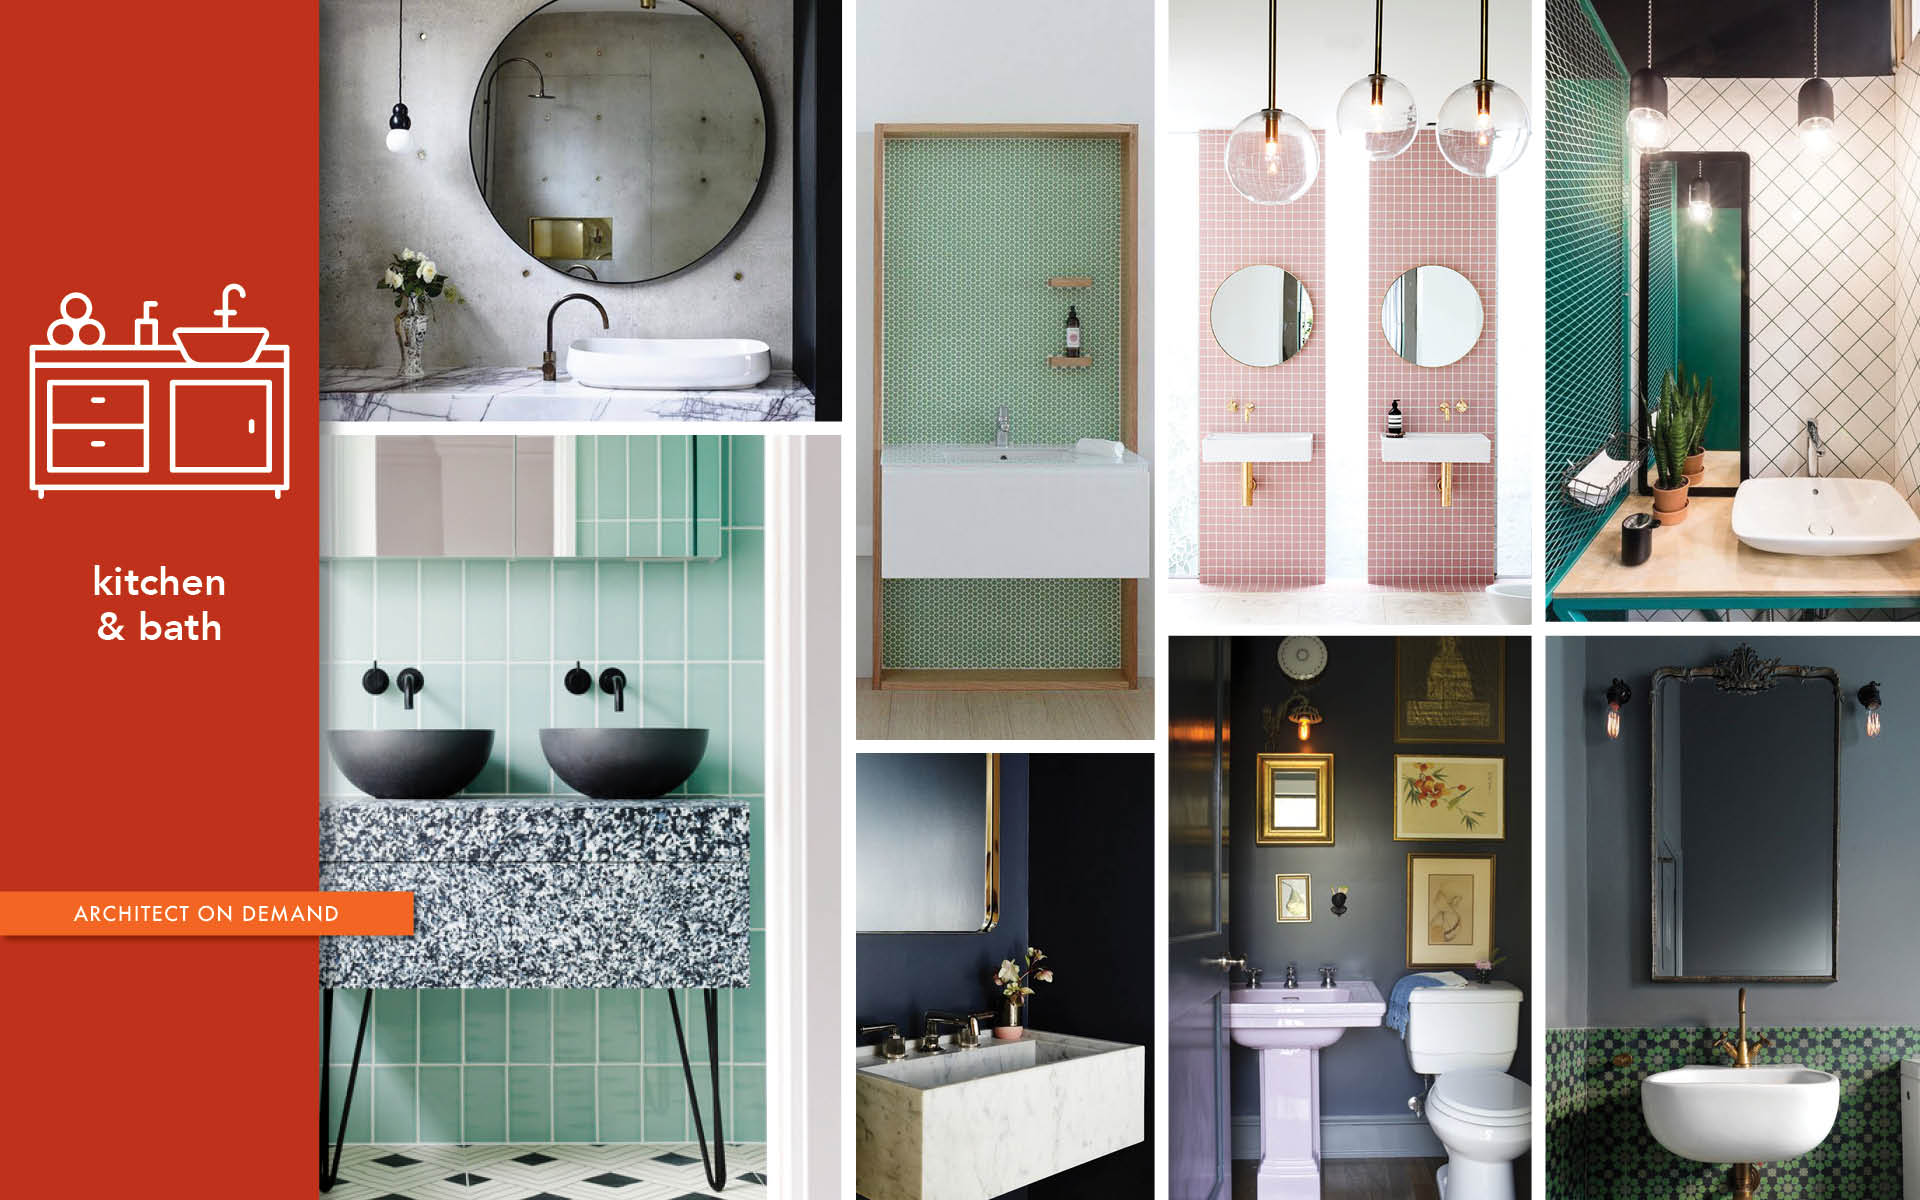 redesign, powder room, steps, architect on demand, advice without strings